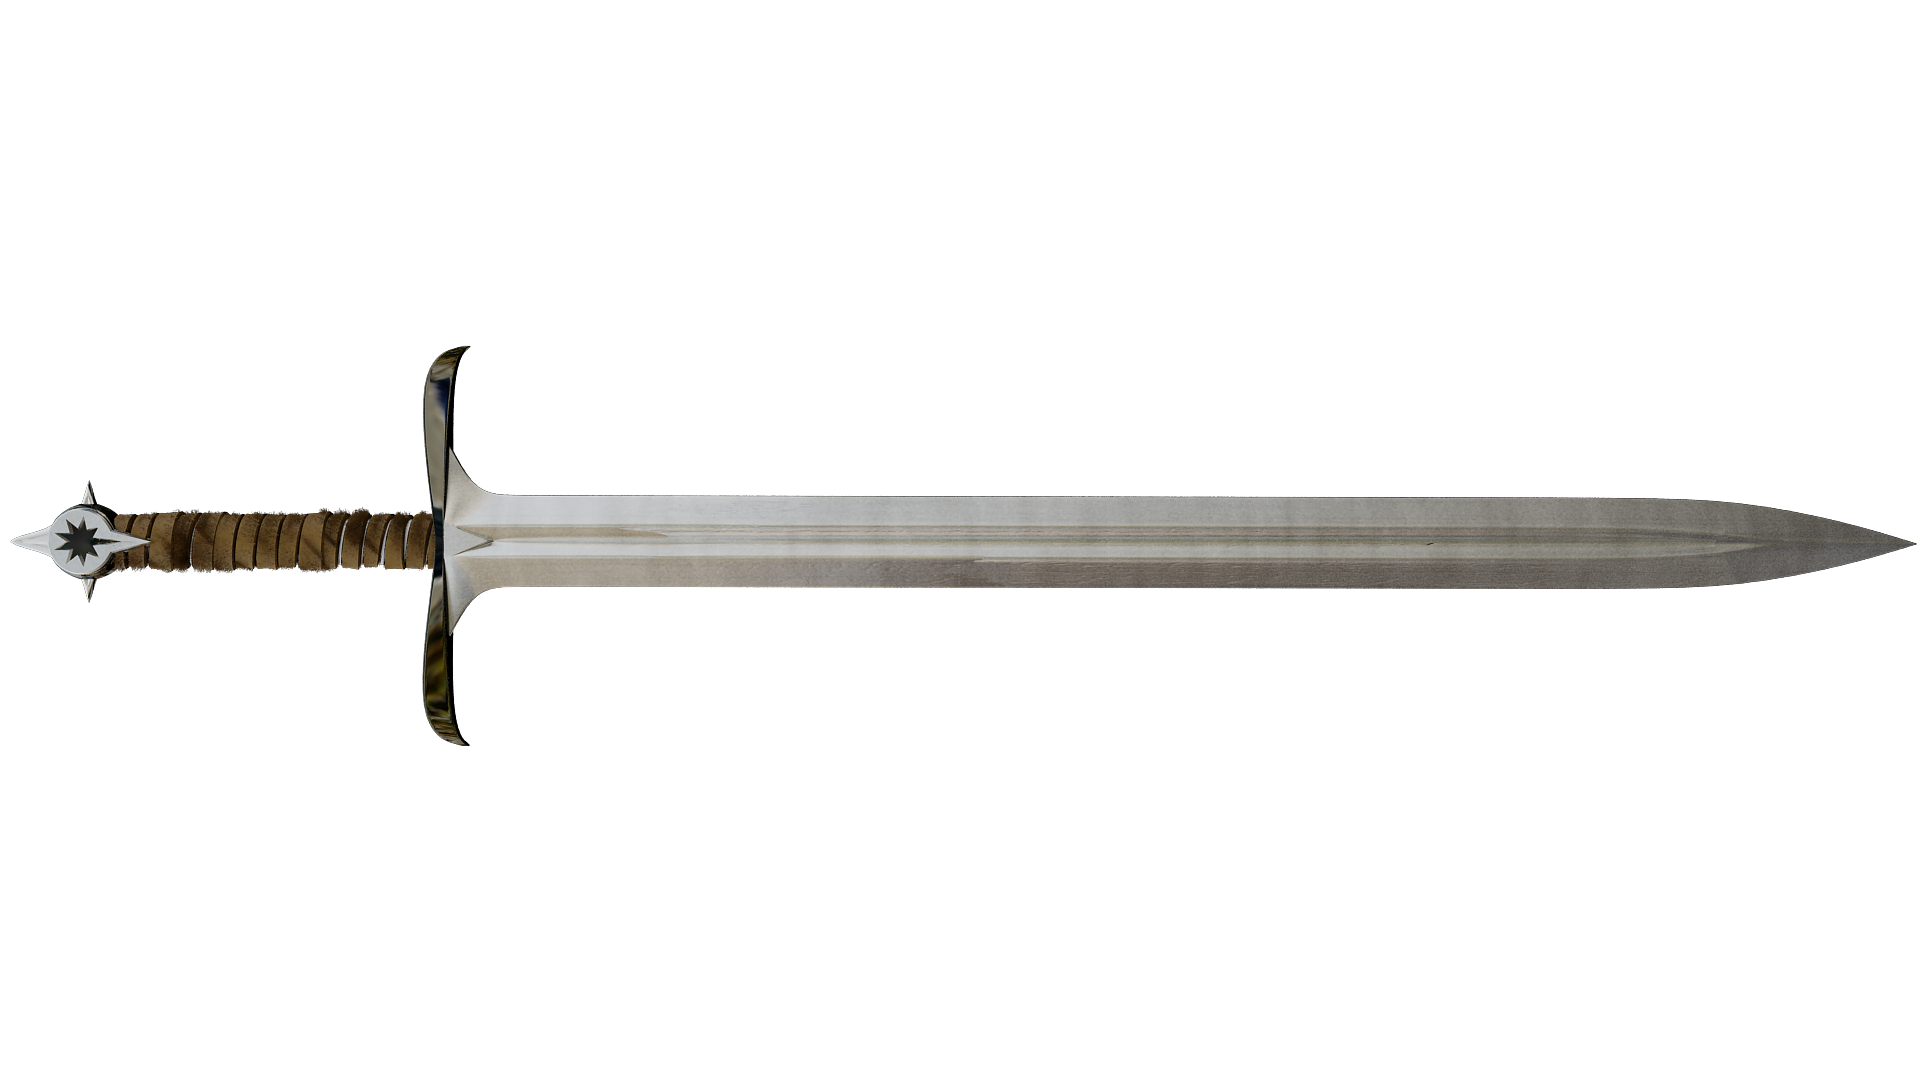 Choix d'une faction - Page 5 Sword-hd-png-sword-png-image-1920